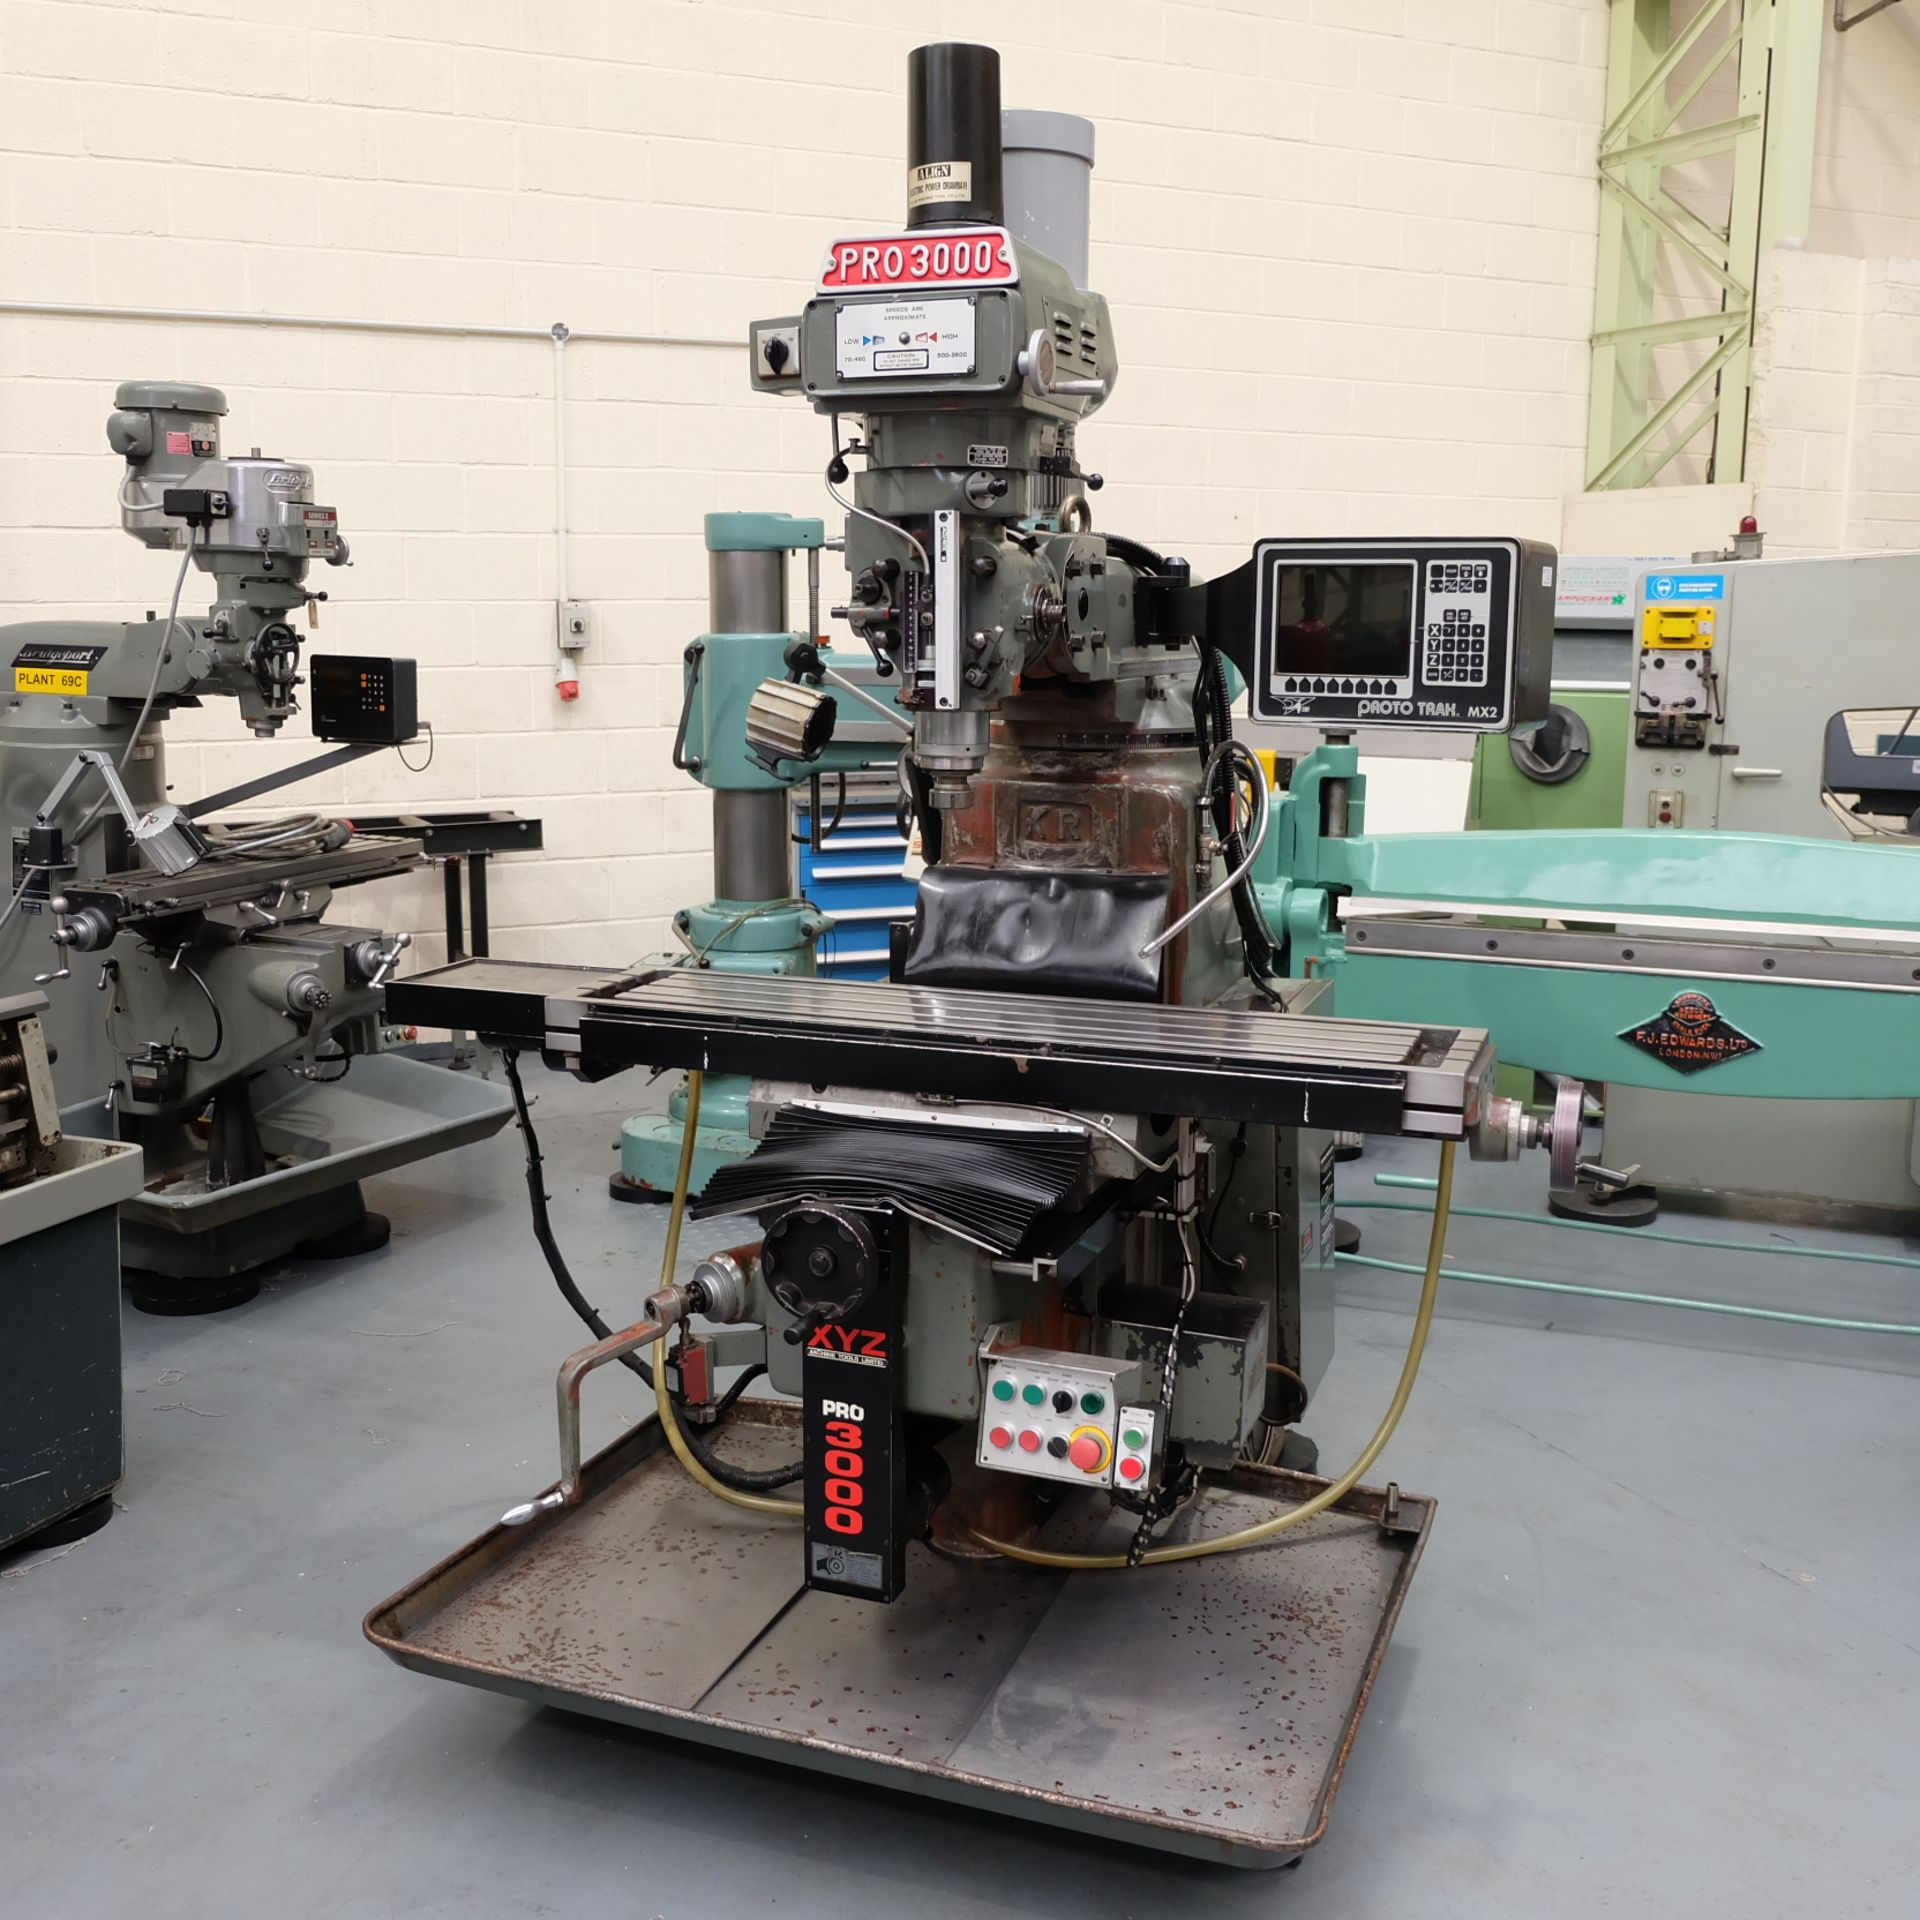 XYZ Pro3000: Turret Mill. With Prototrak MX2 Two Axis Programmable Control.